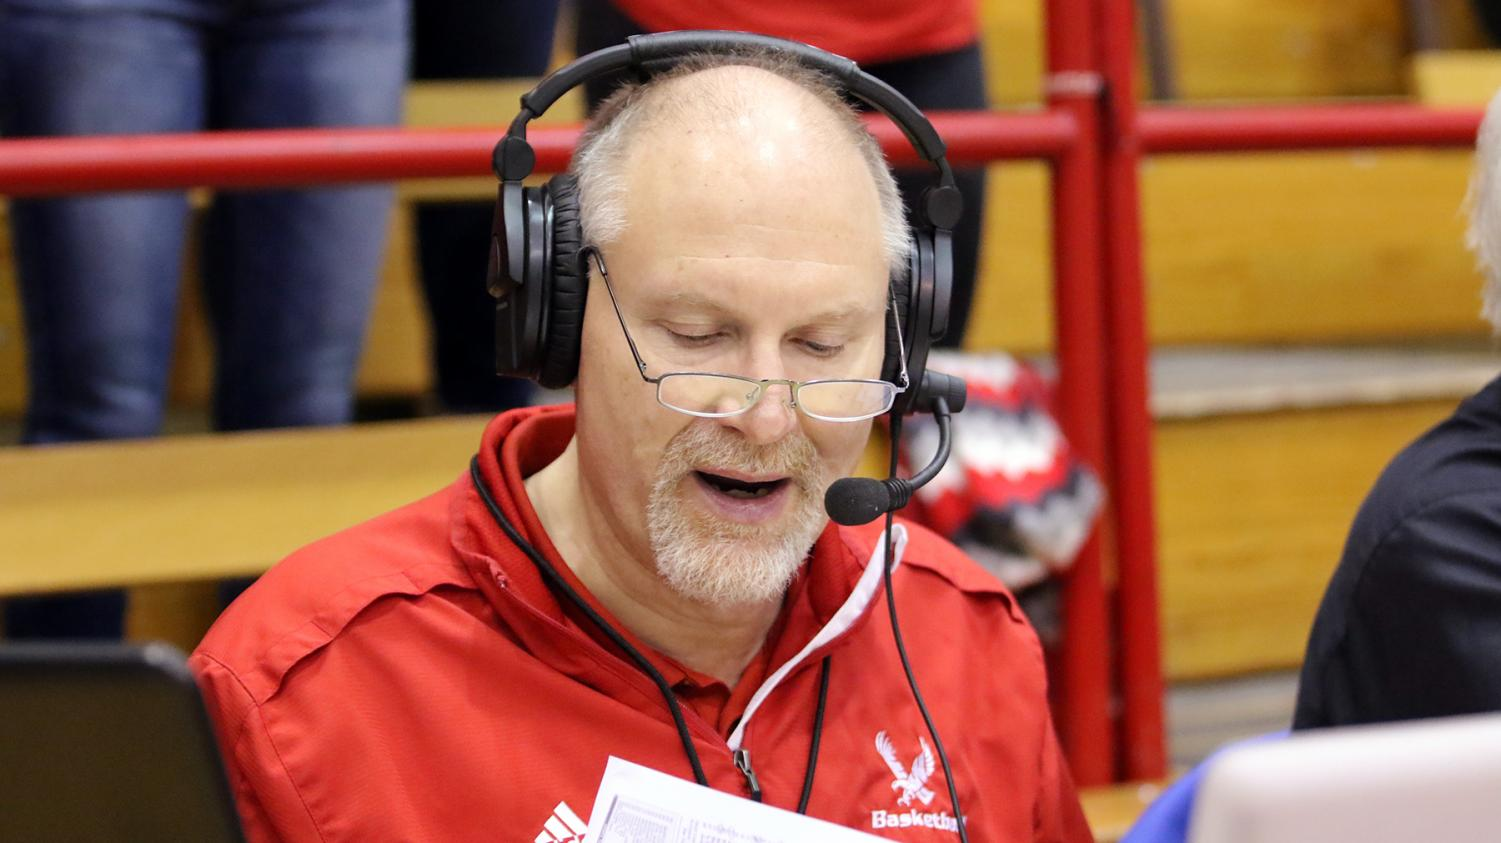 Larry Weir, the radio voice of EWU football and men's basketball.